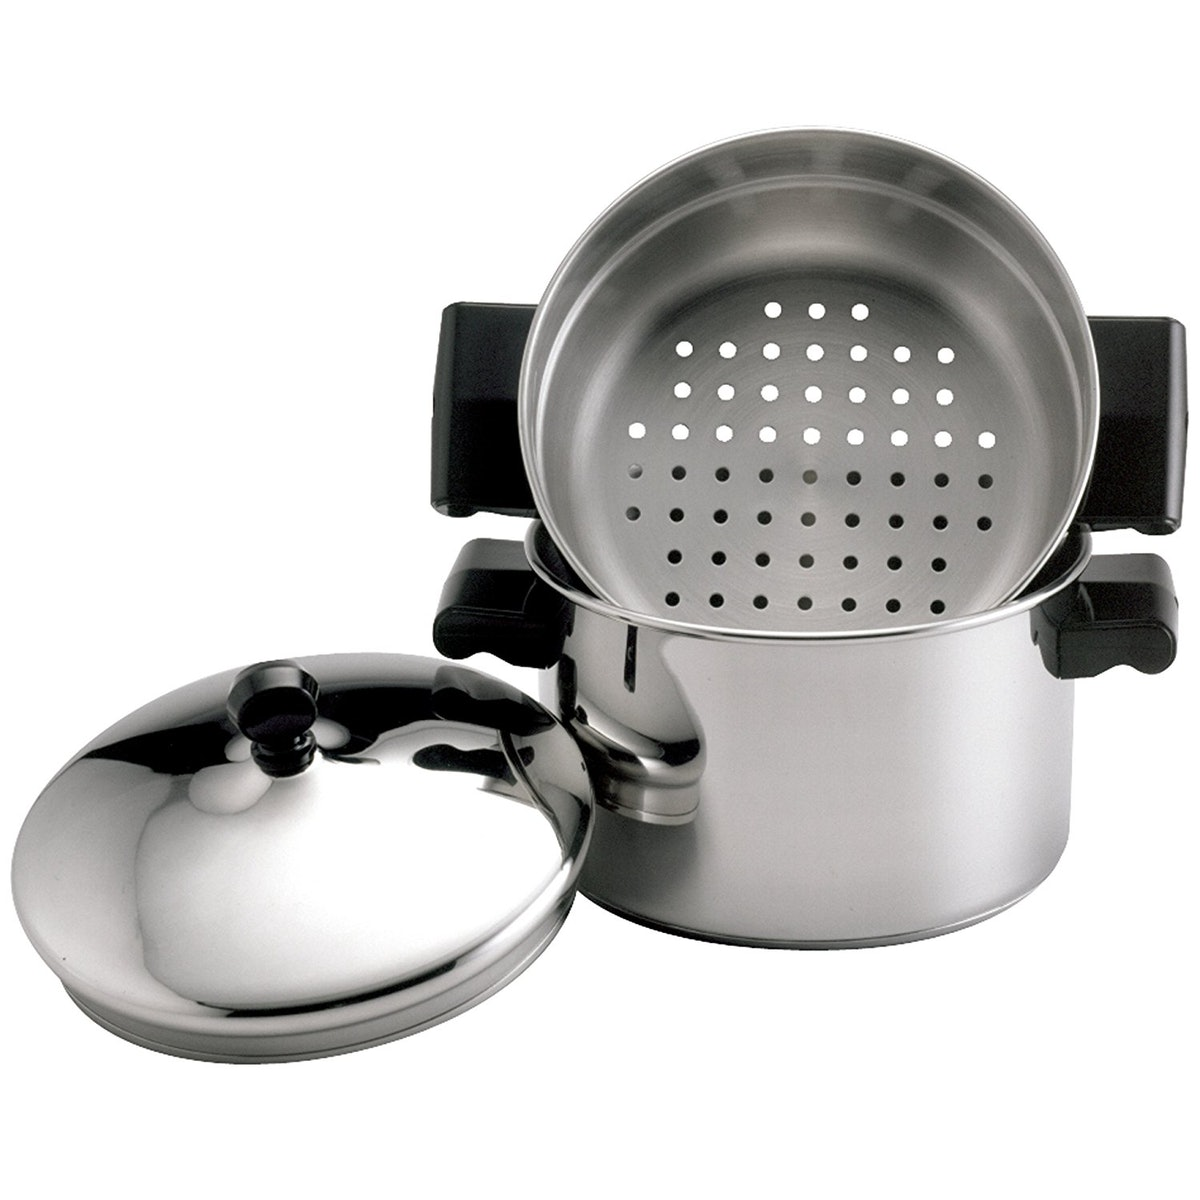 Farberware Classic Stainless Steel Stack 'n' Steam Saucepot and Steamer